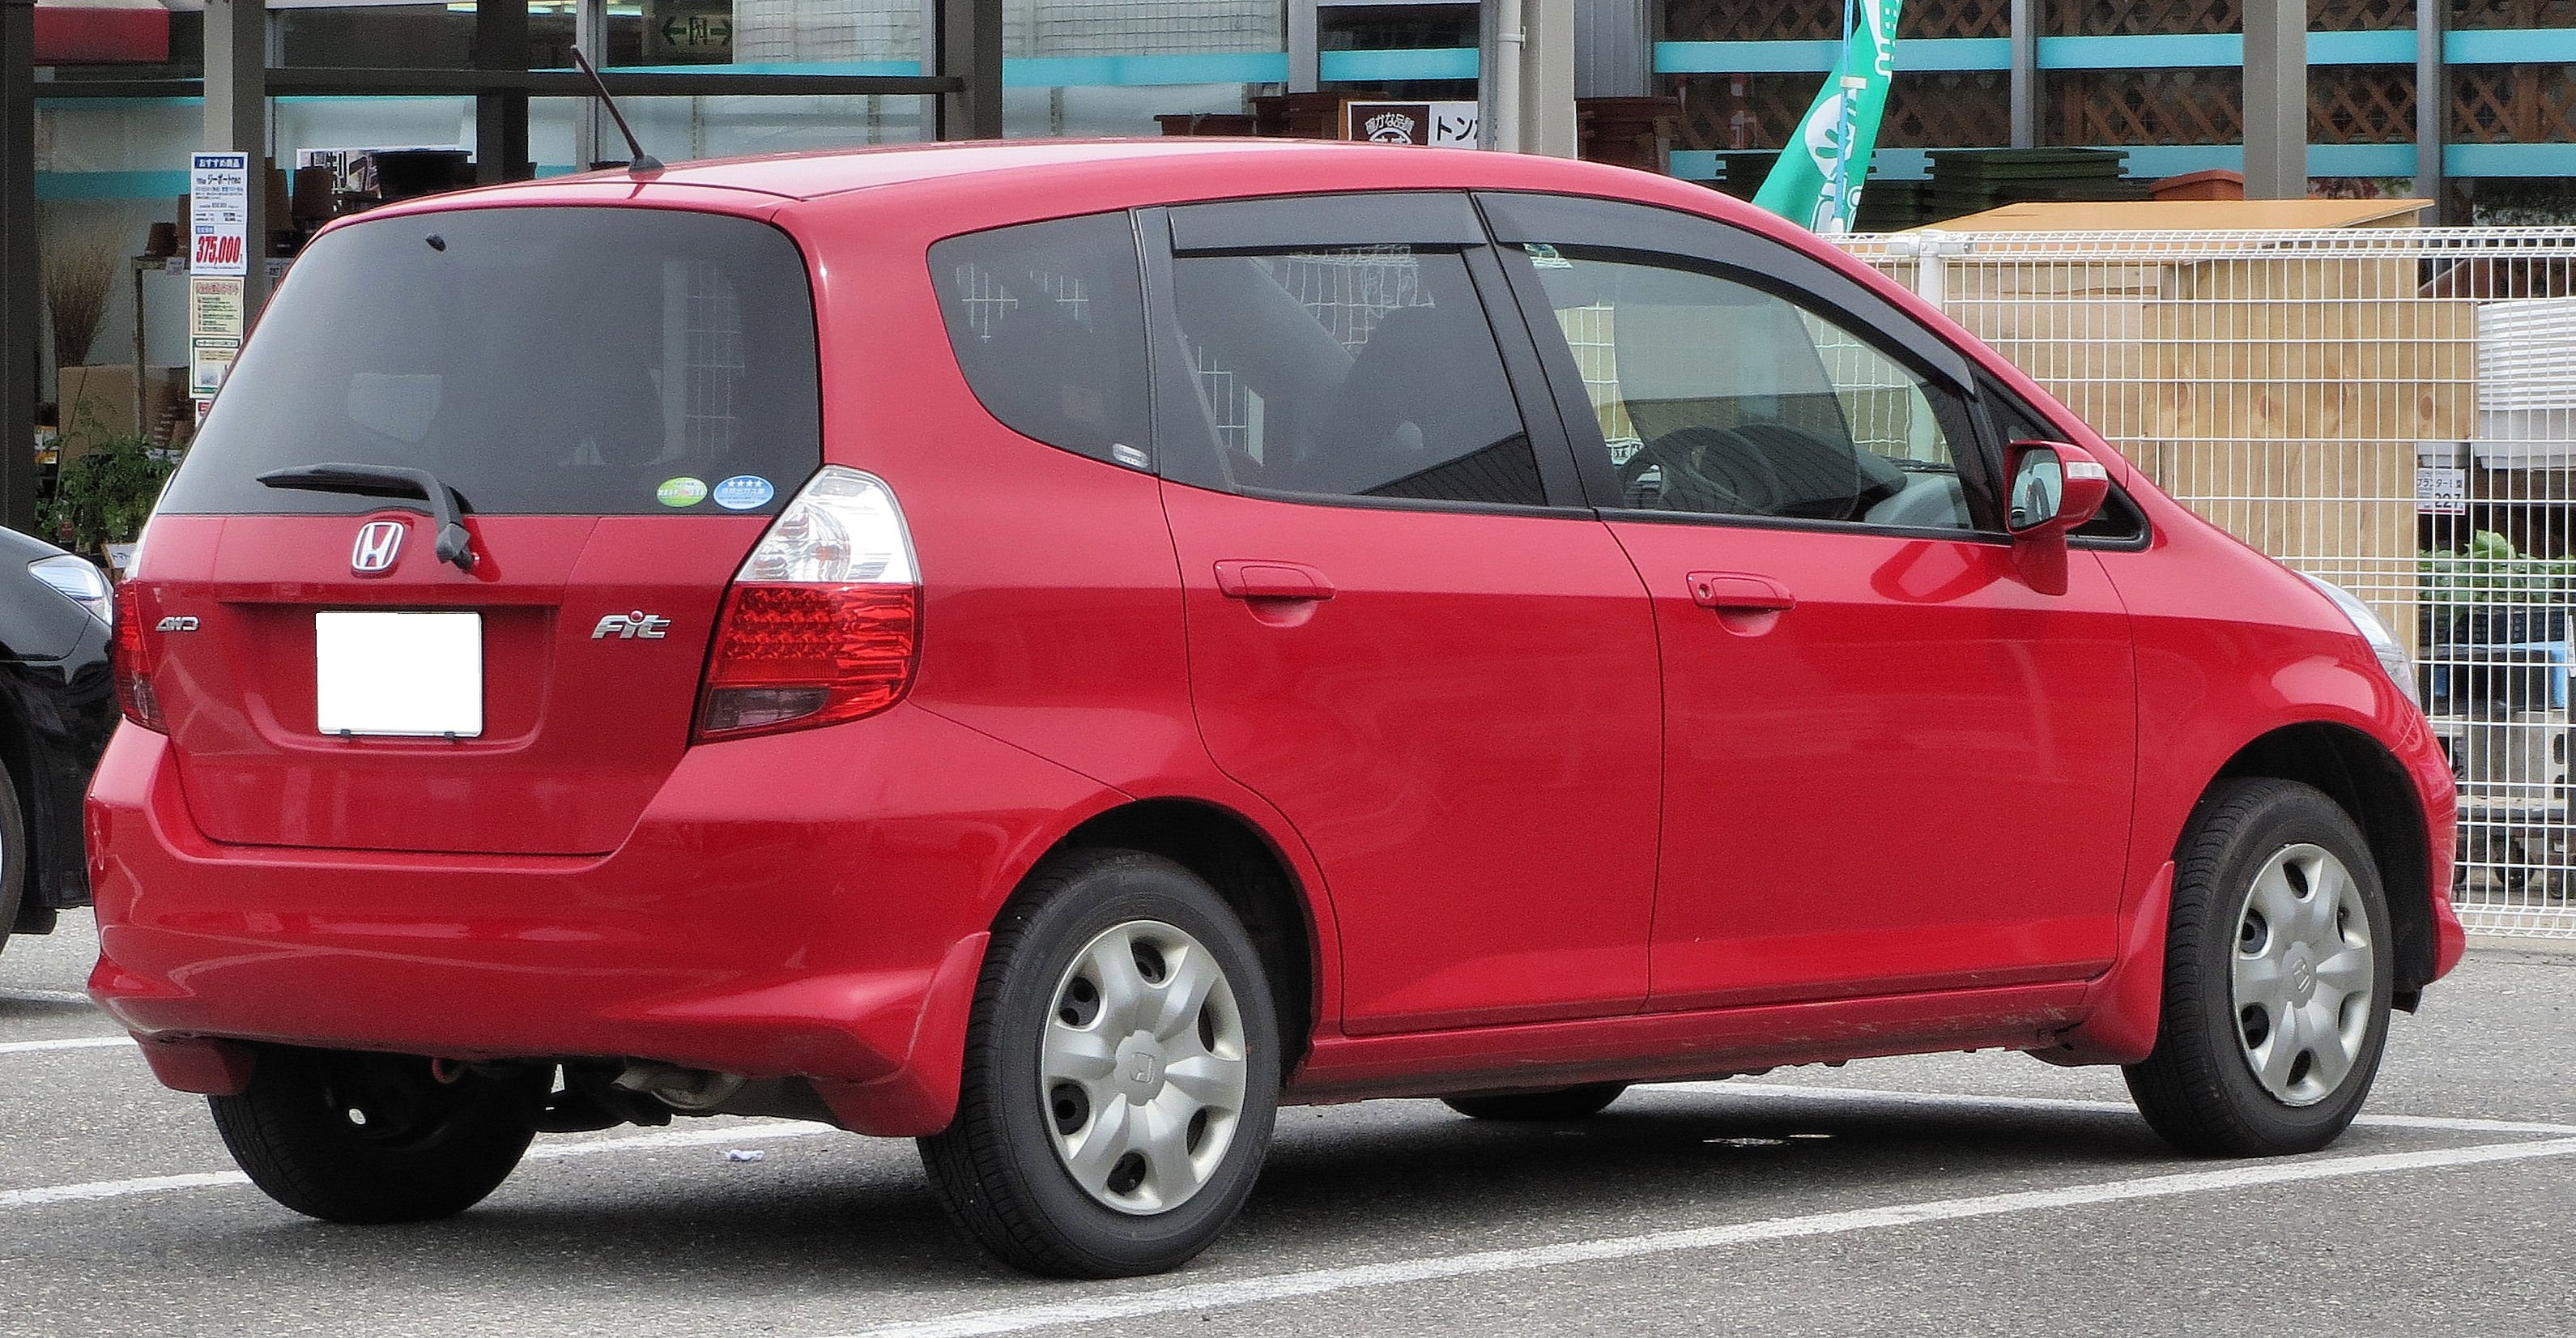 honda fit pictures #13